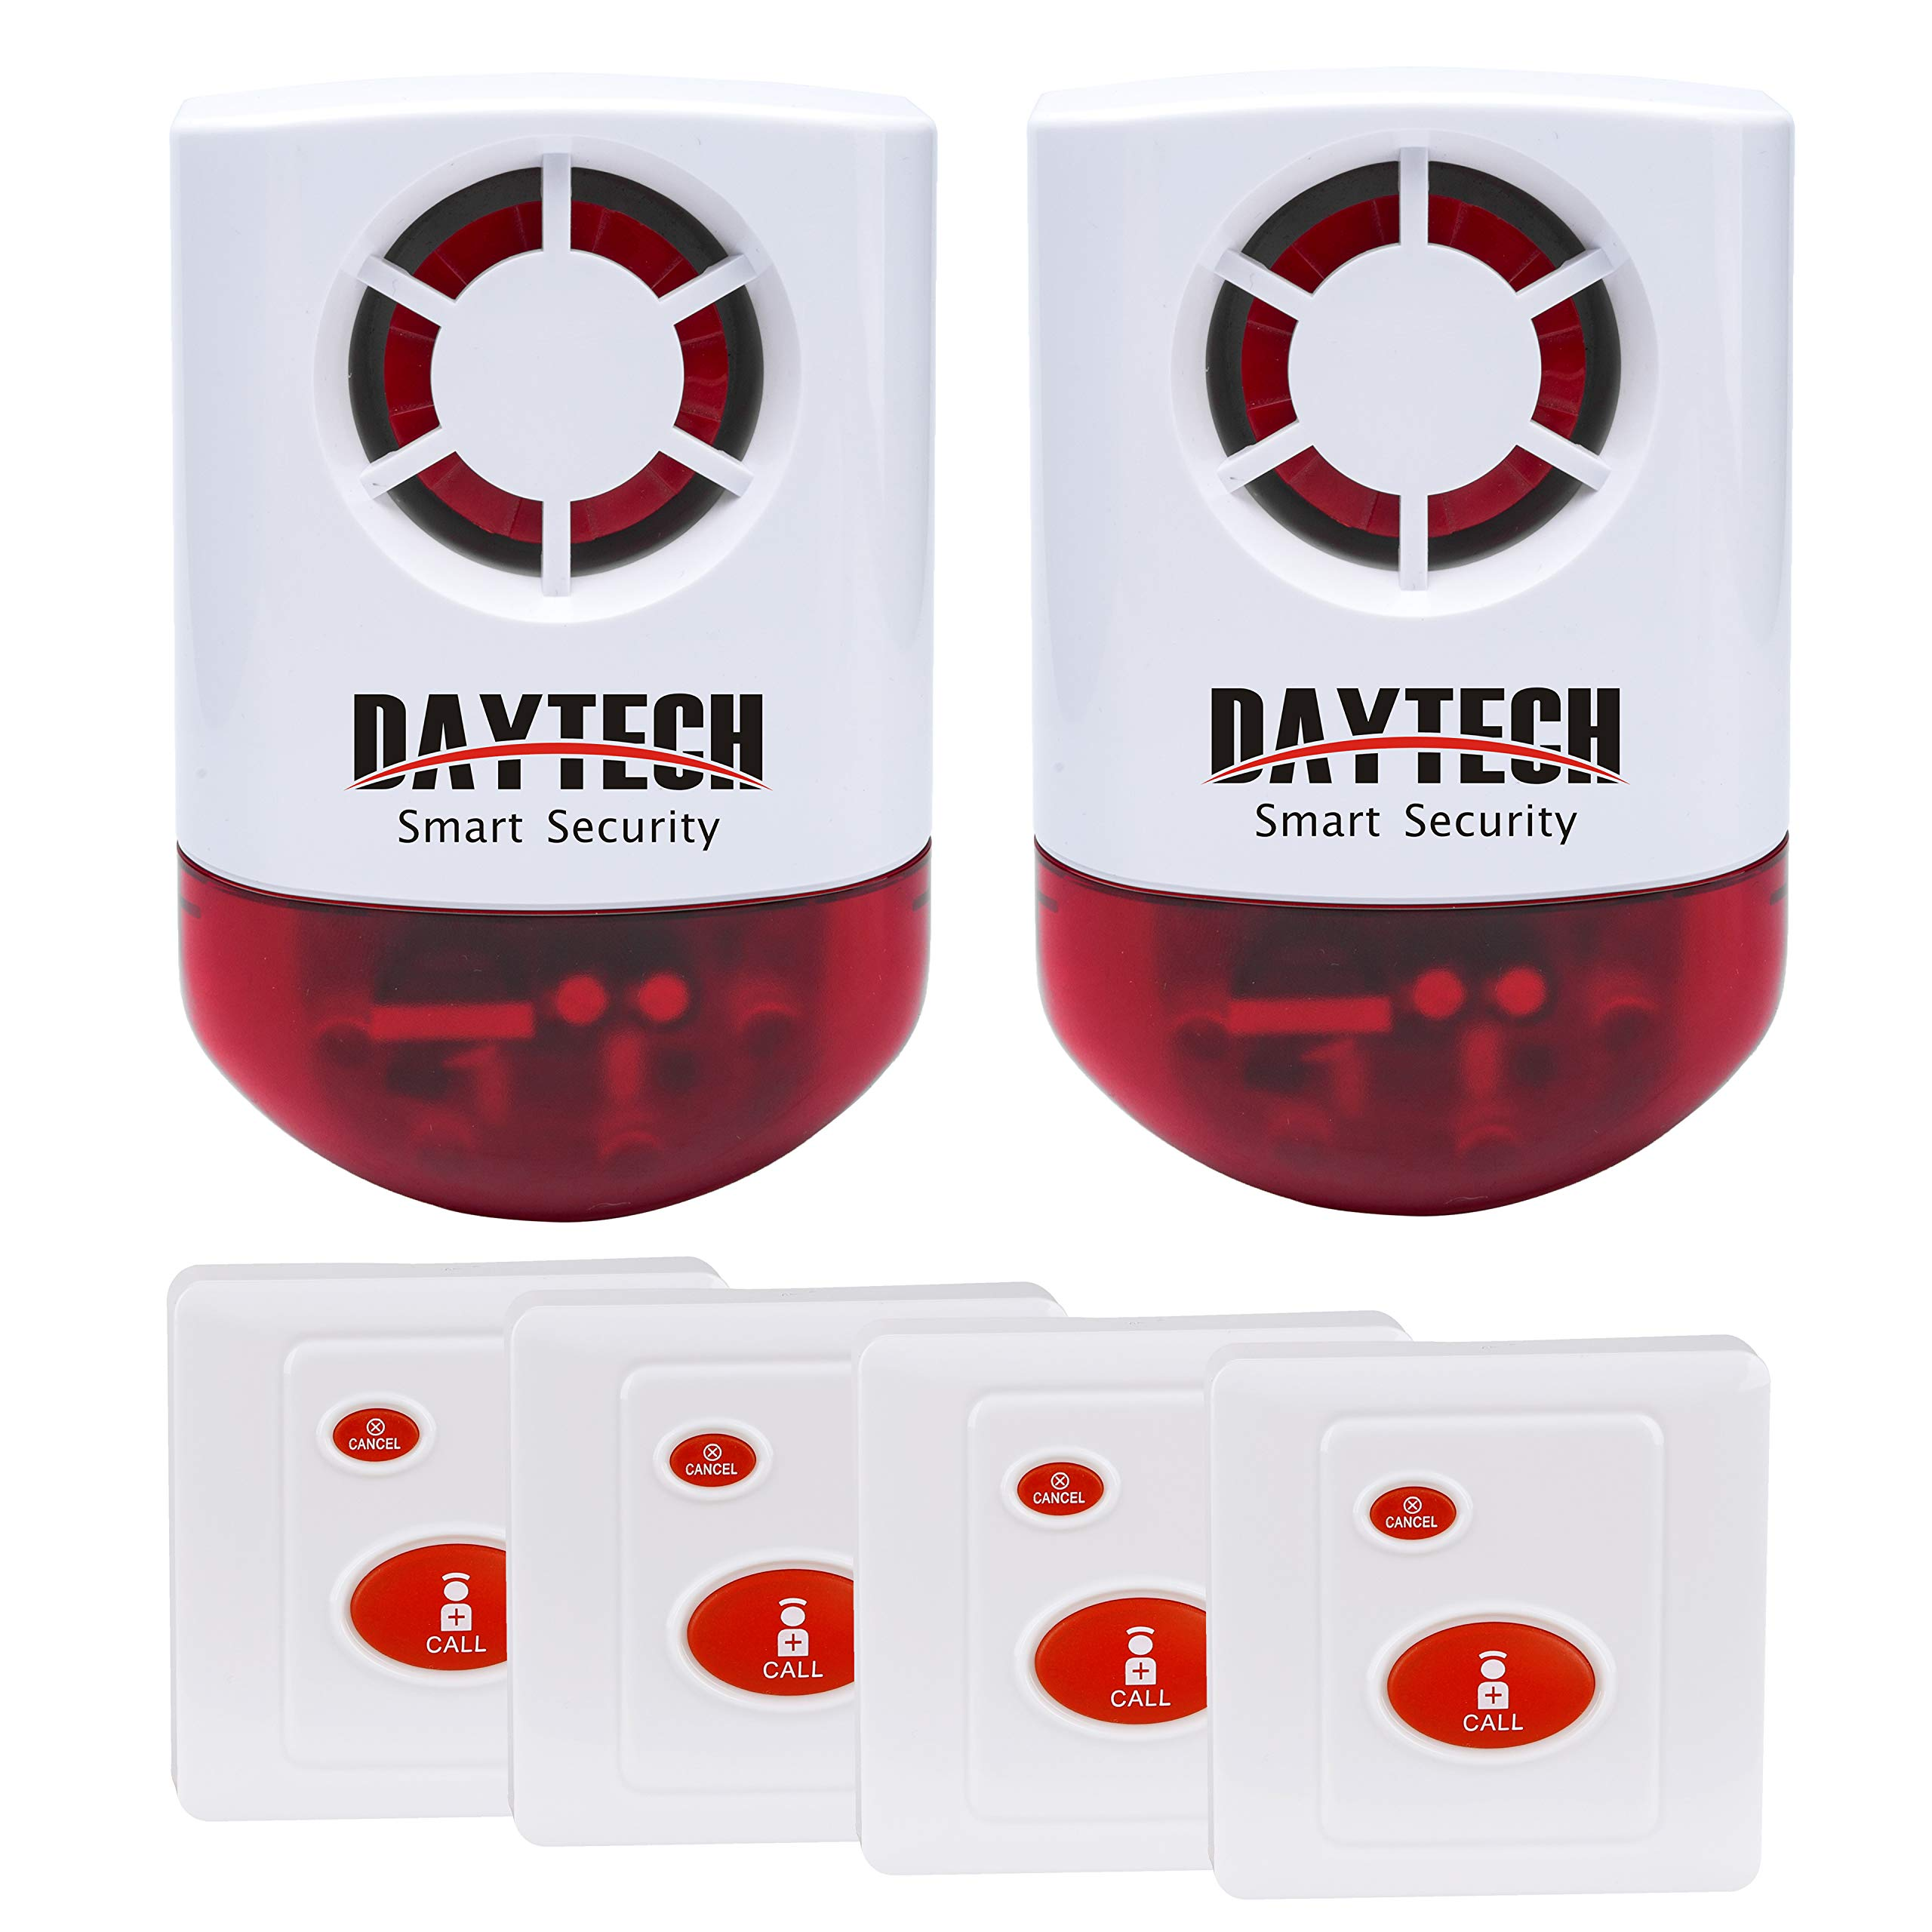 Daytech Wireless Strobe Siren Alarm Home Caring Loud Outdoor SOS Alert System 2 Red Flashing Siren and 4 Emergency Button for Store Home Hotel Jewelry Shop Security & Fire Alarm by Daytech